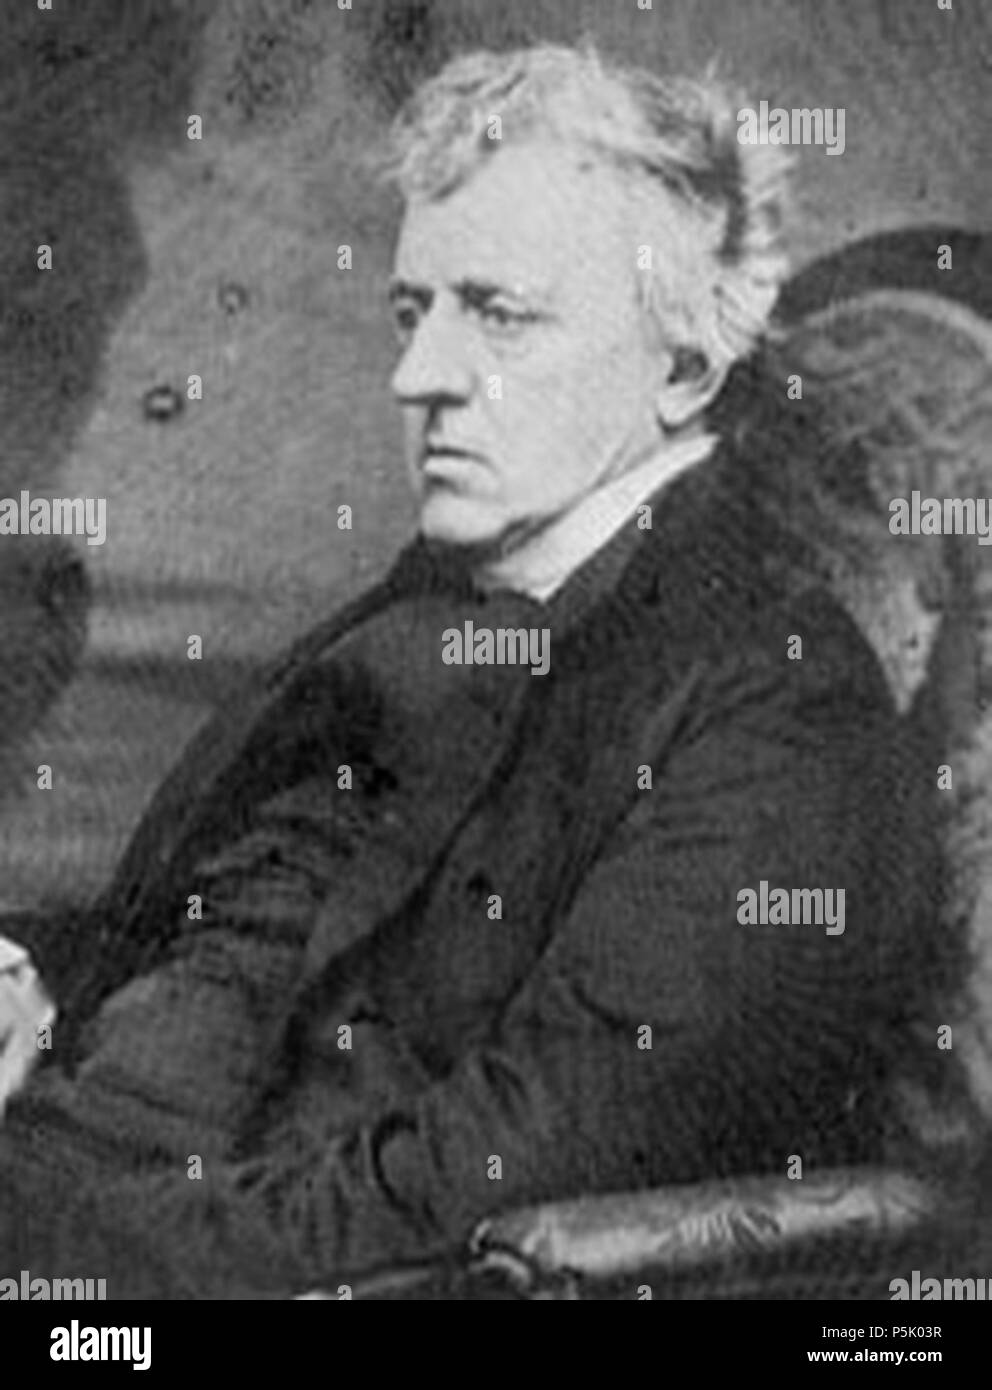 N/A. English: Archdeacon Dodgson, father of Lewis Carroll; photo by Carroll . 24 July 2005.   Lewis Carroll (1832–1898)   Alternative names Charles Lutwidge Dodgson  Description British-English writer, mathematician and photographer  Date of birth/death 27 January 1832 14 January 1898  Location of birth/death Daresbury, Cheshire, England Guildford, Surrey, England  Work period 1854 to 1898  Work location England  Authority control  : Q38082 VIAF:66462036 ISNI:0000 0001 2137 136X ULAN:500027372 LCCN:n79056546 NLA:35039311 WorldCat 119 Archdeacon Dodgson - Stock Image